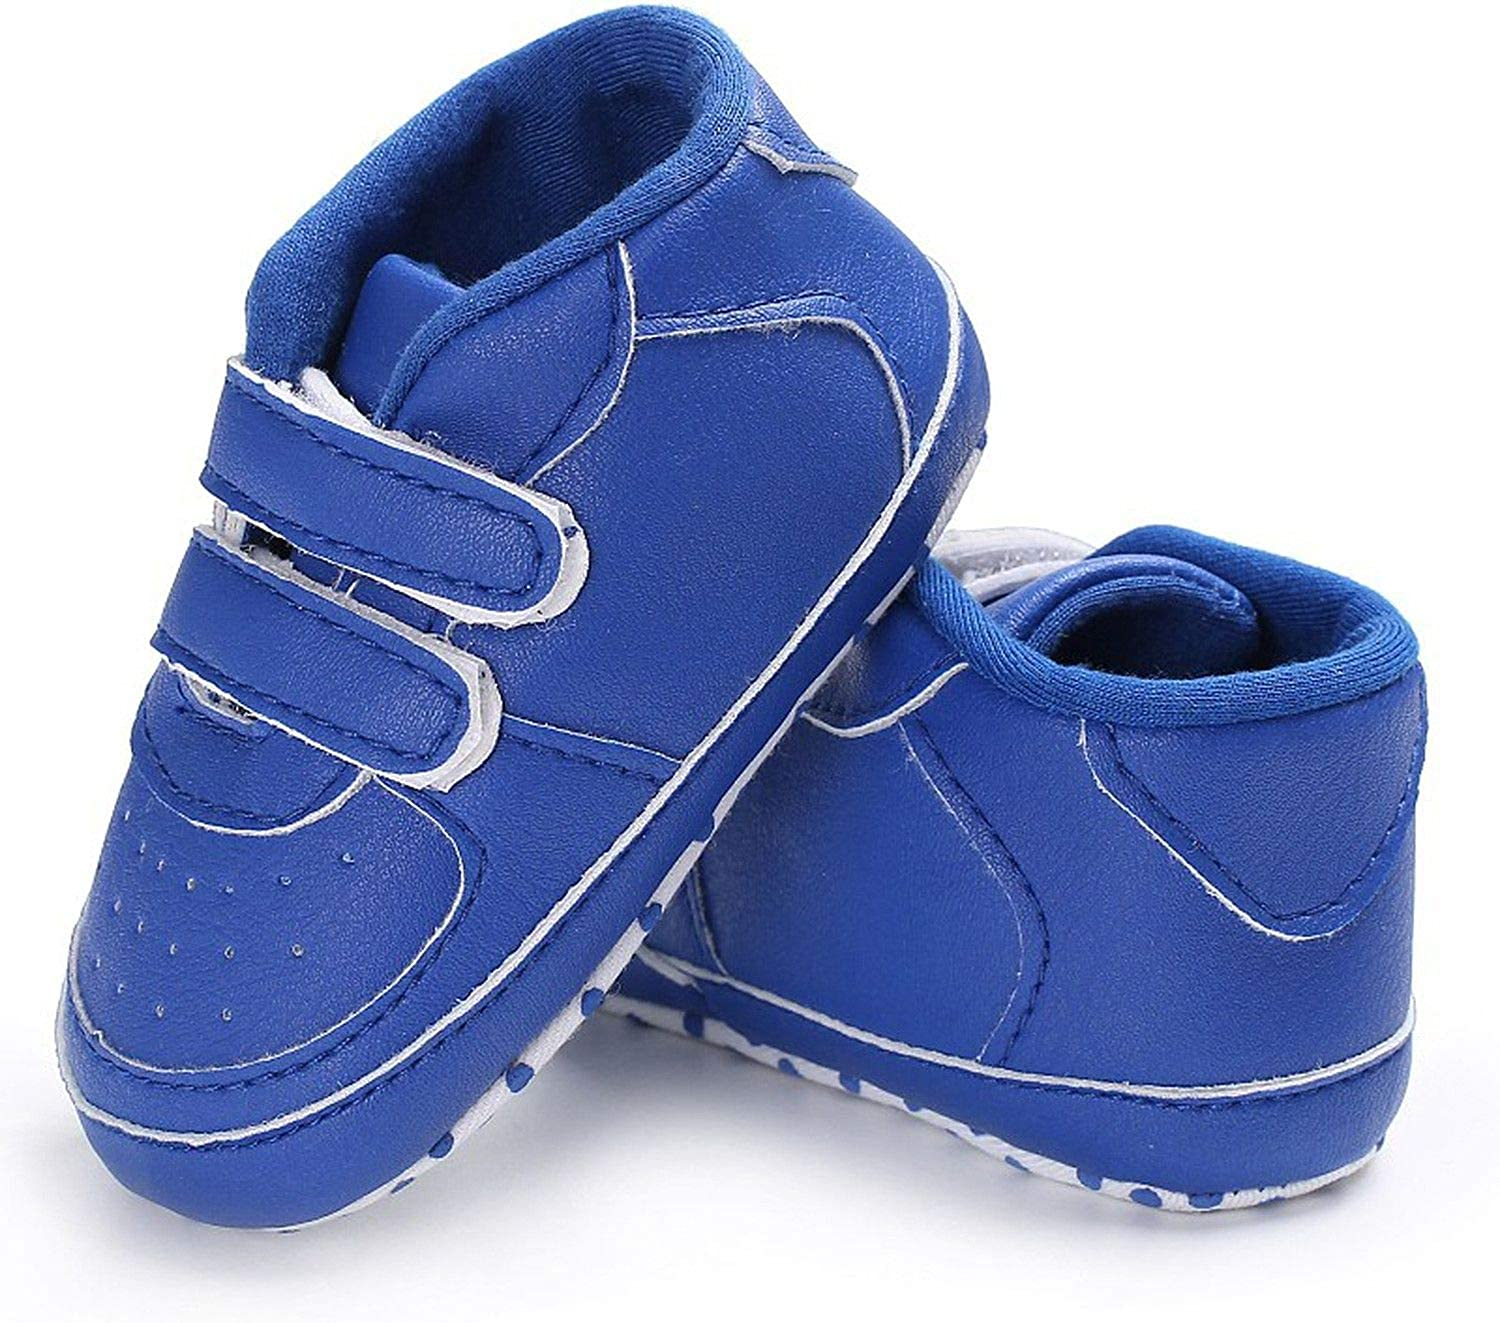 Beautymade Baby Moccasins Newborn Shoes Kids Sneakers Toddler Infant Boy Girl First Walkers